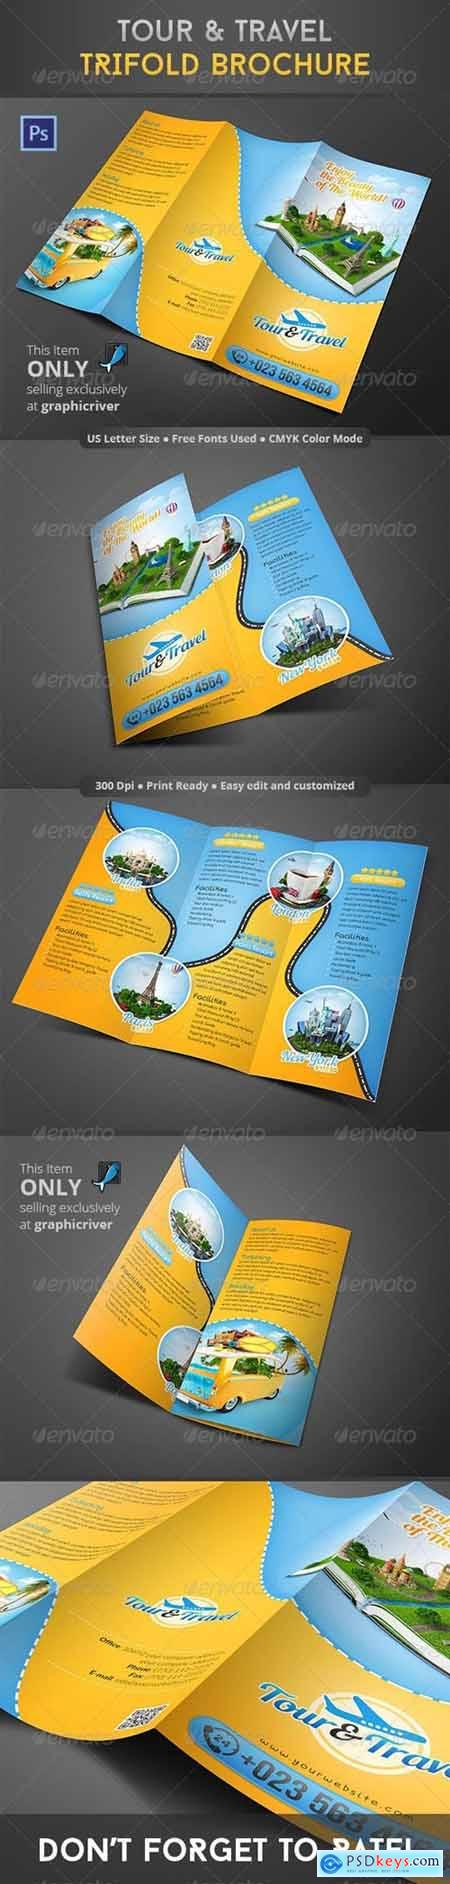 Tour & Travel Trifold Brochure 8610213